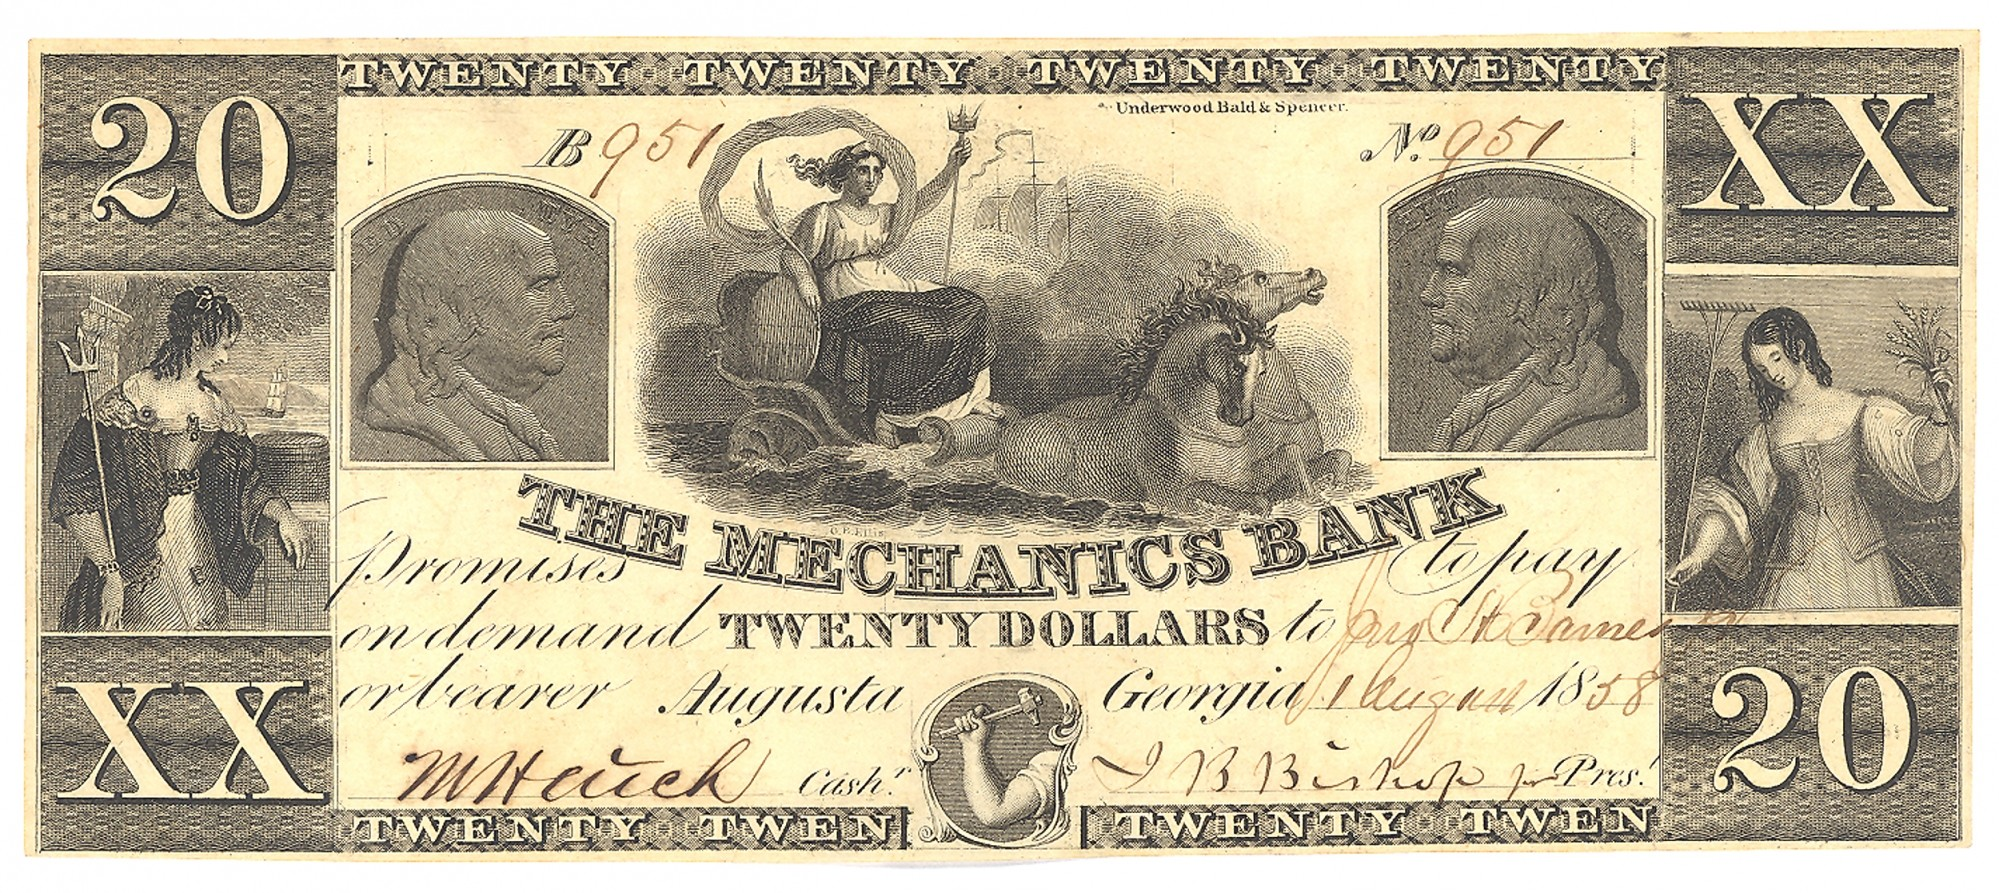 MECHANICS BANK, AUGUSTA, GEORGIA, $20 NOTE